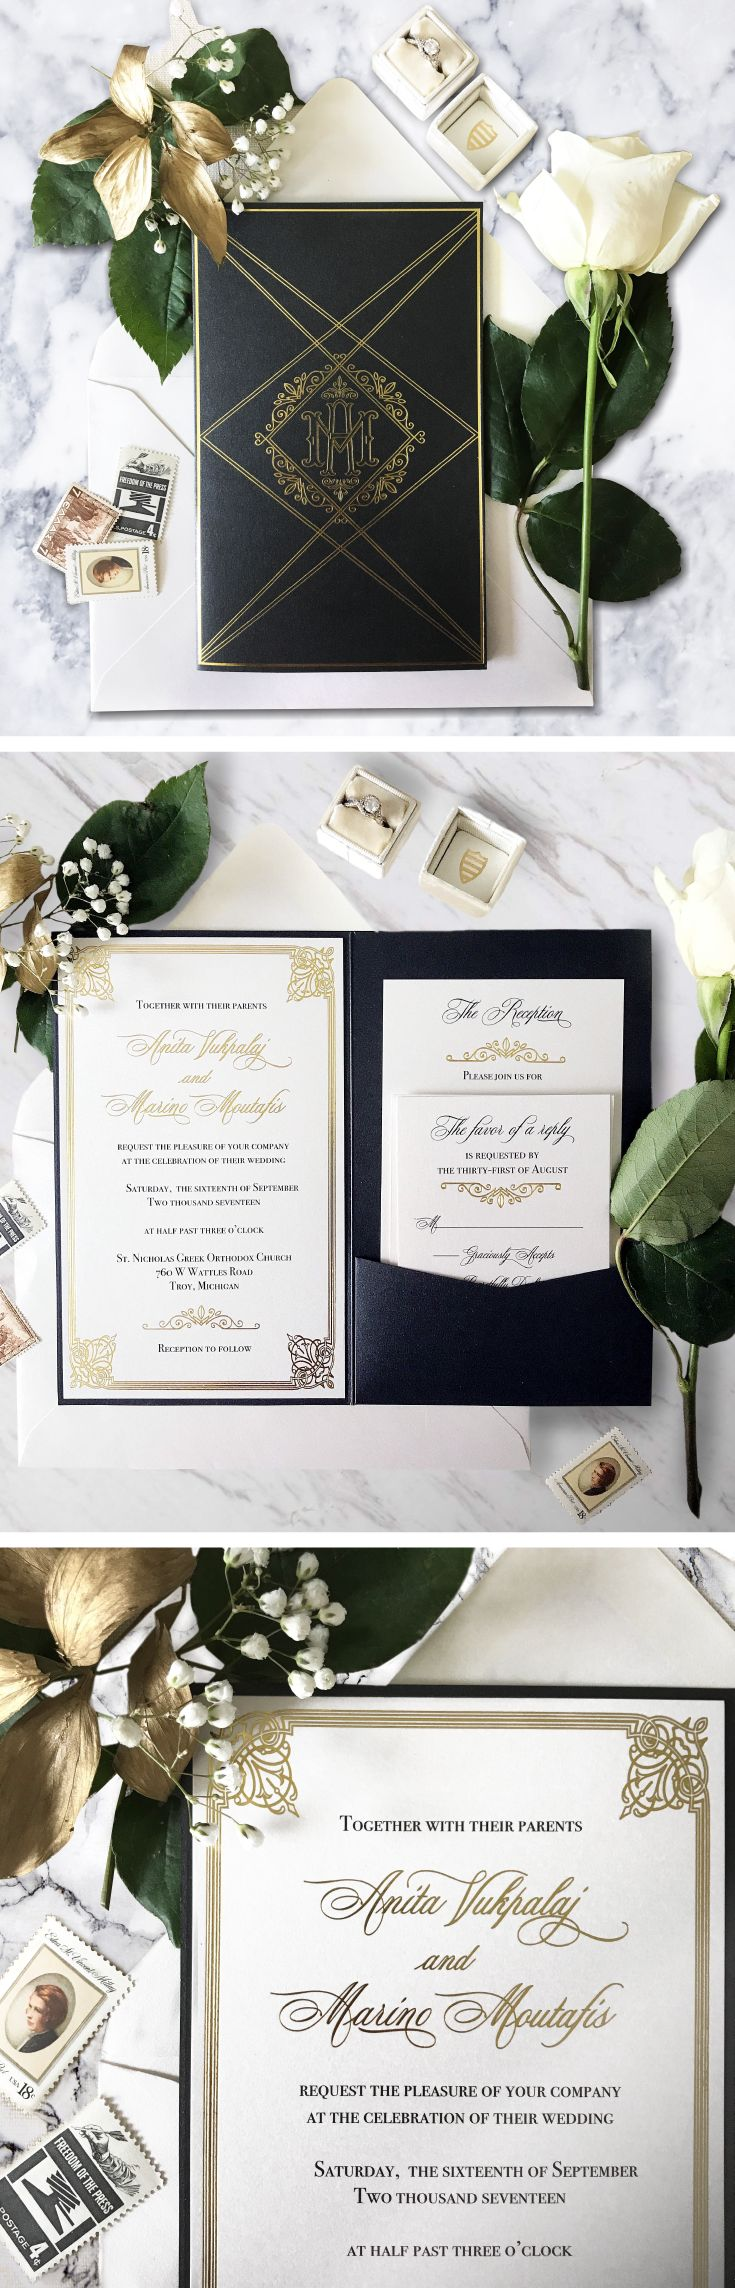 An art deco and Great Gatsby inspired wedding invitation suite designed custom for a couple that loves the roaring twenties era. Gold foil printing on natural white shimmer cardstock and a fully custom invitation pocket in a black shimmer card stock.